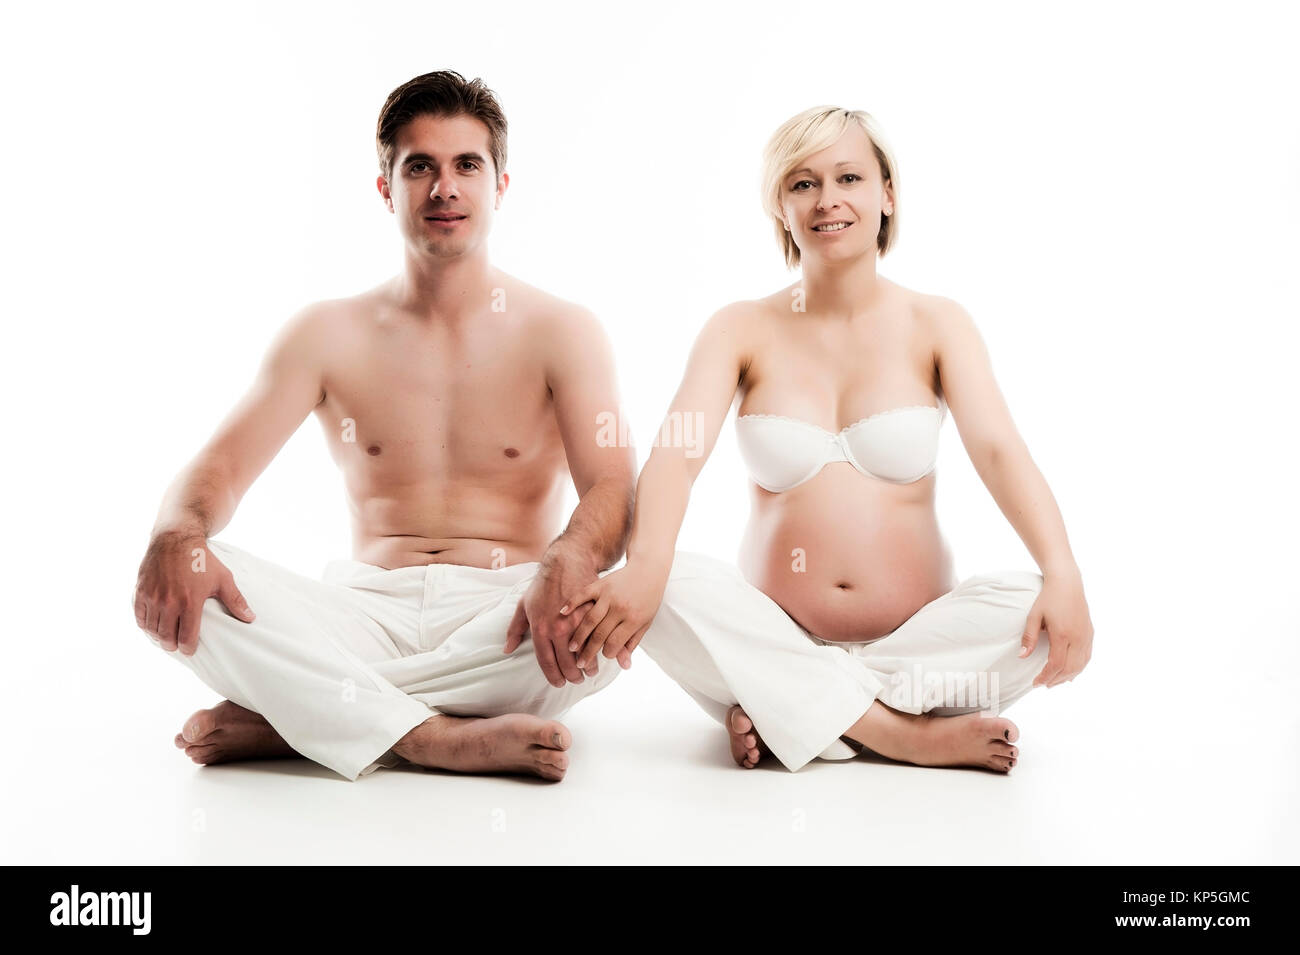 Werdende Eltern - parents-to-be Stock Photo